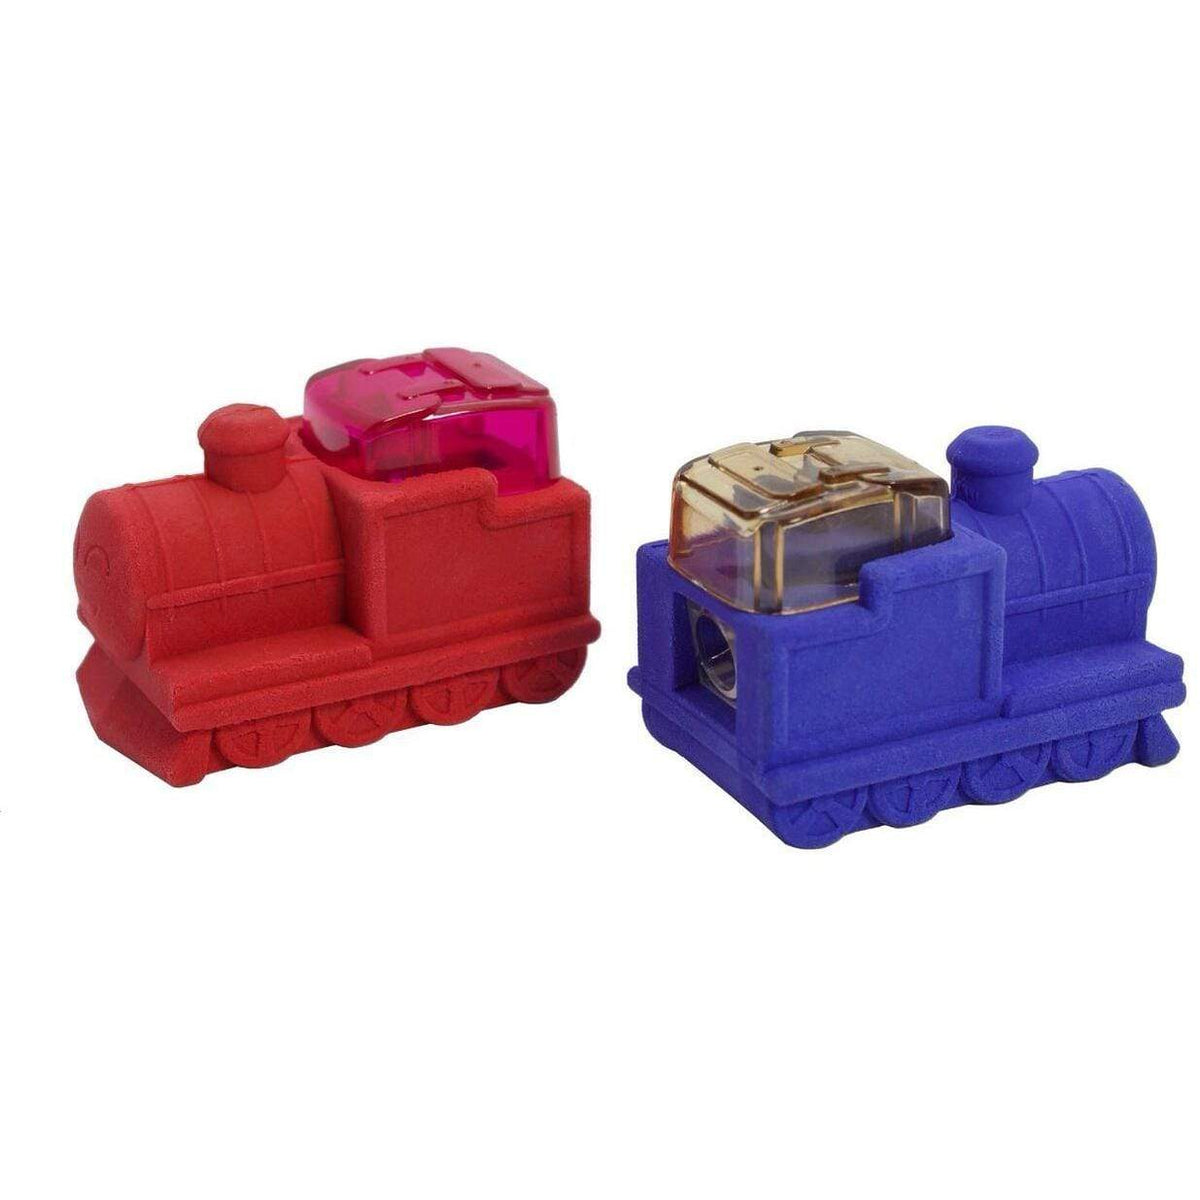 Train Engine Eraser & Pencil Sharpener - Set of 2